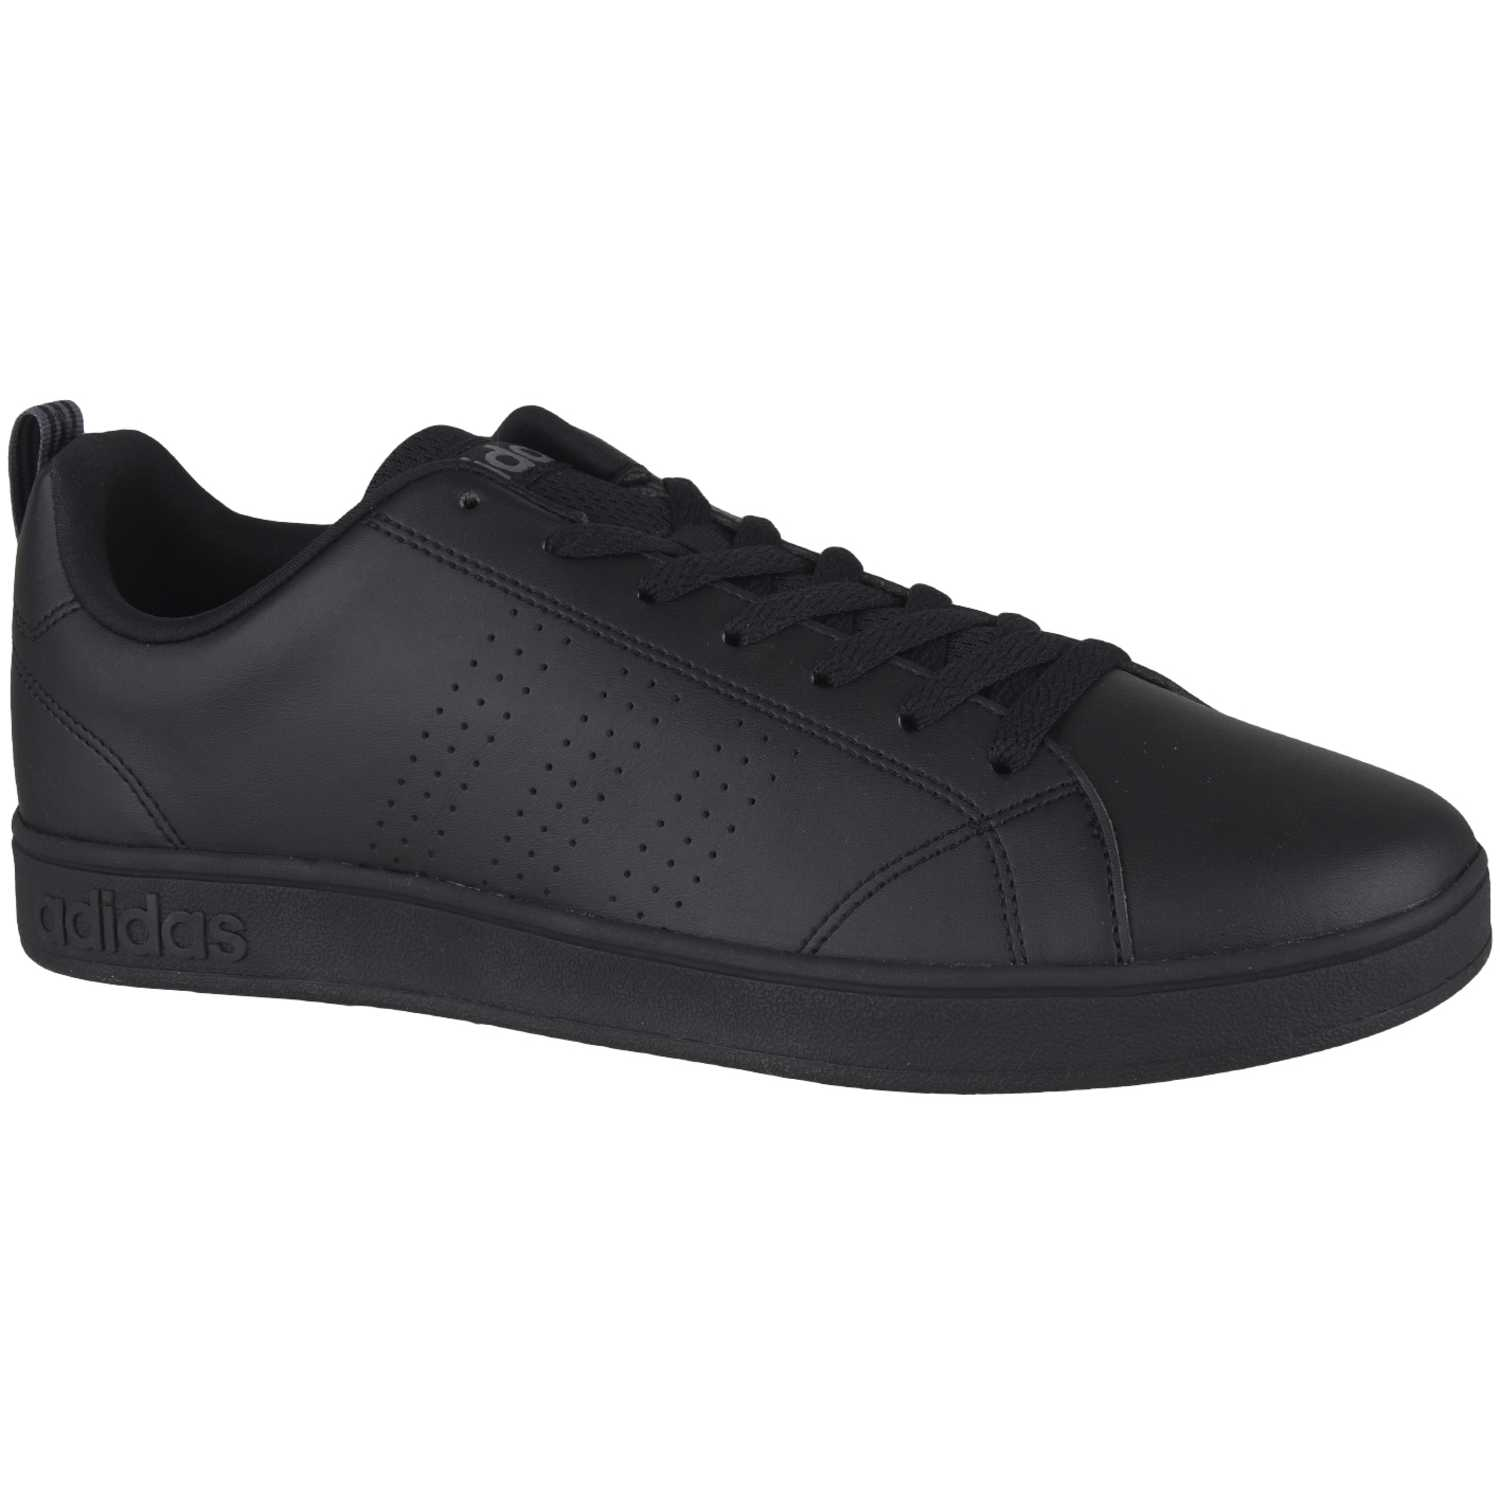 buy online 234a3 030d4 ... norway zapatilla de hombre adidas neo negro vs advantage cl da016 48846